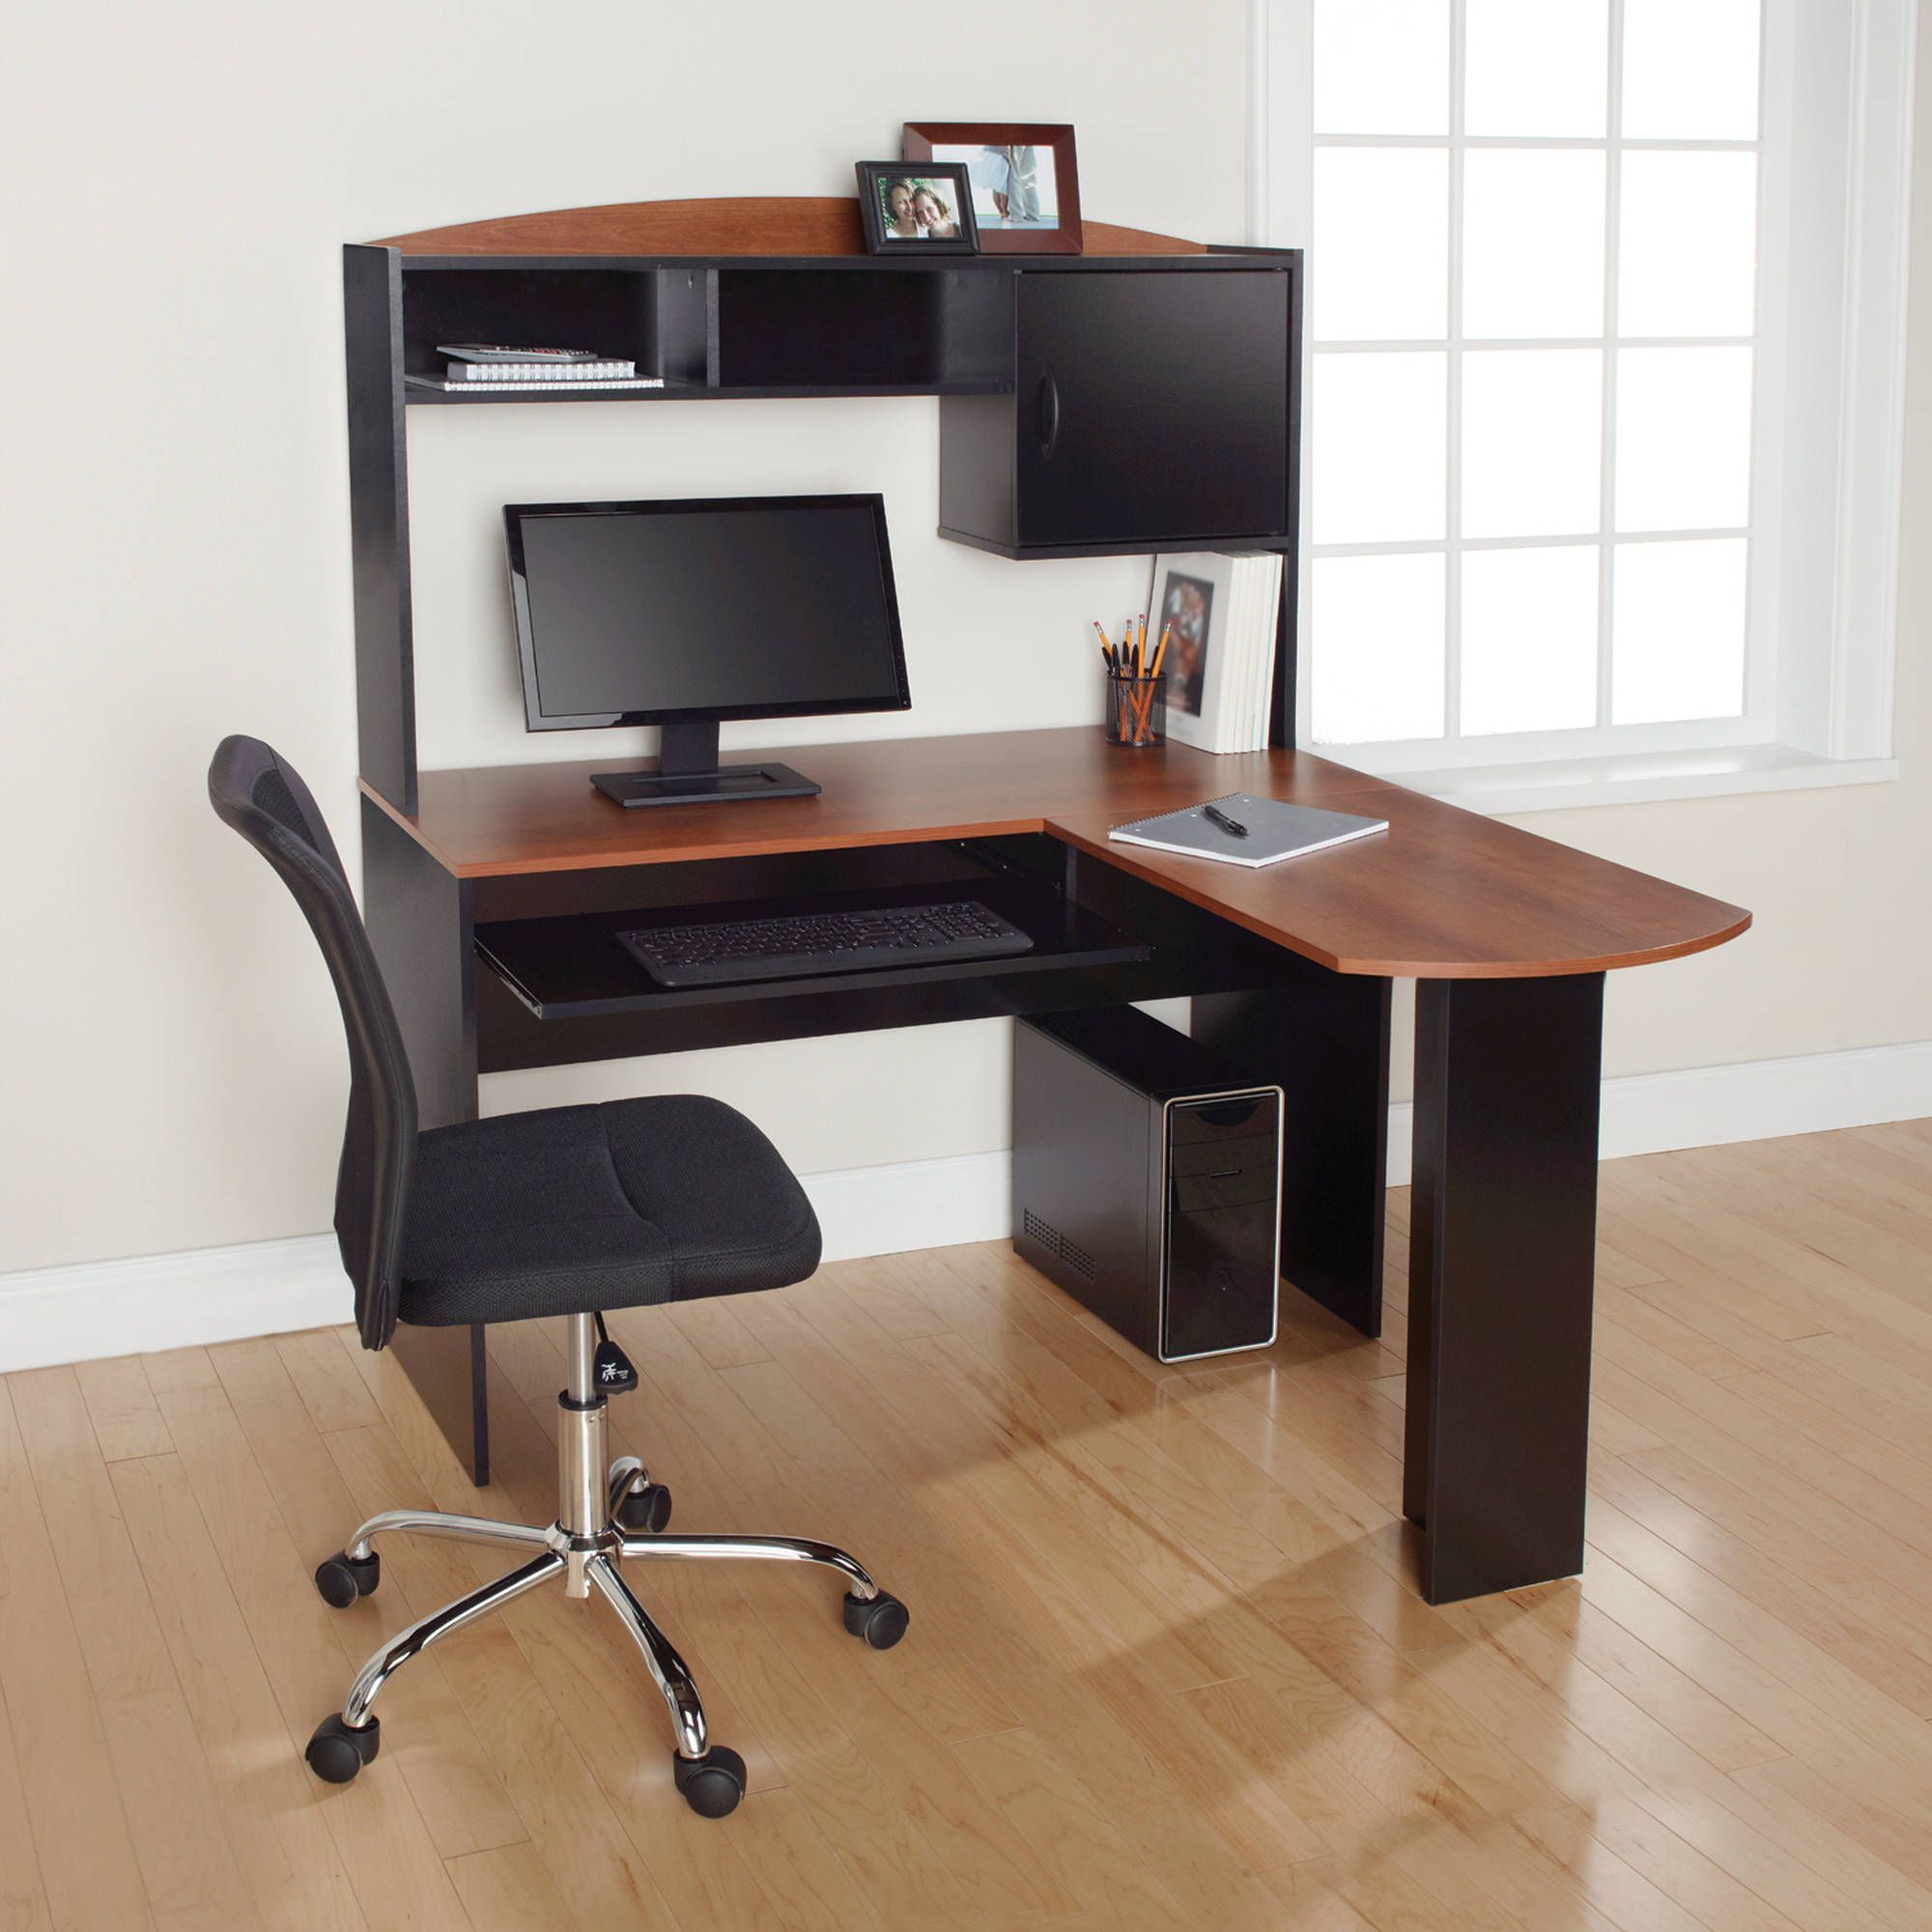 with neutral wall ikea desks black home furniture idea for plus office awesome classic l brass of also great corner by gold shaped white decoration brown drawer pulls benefits desk